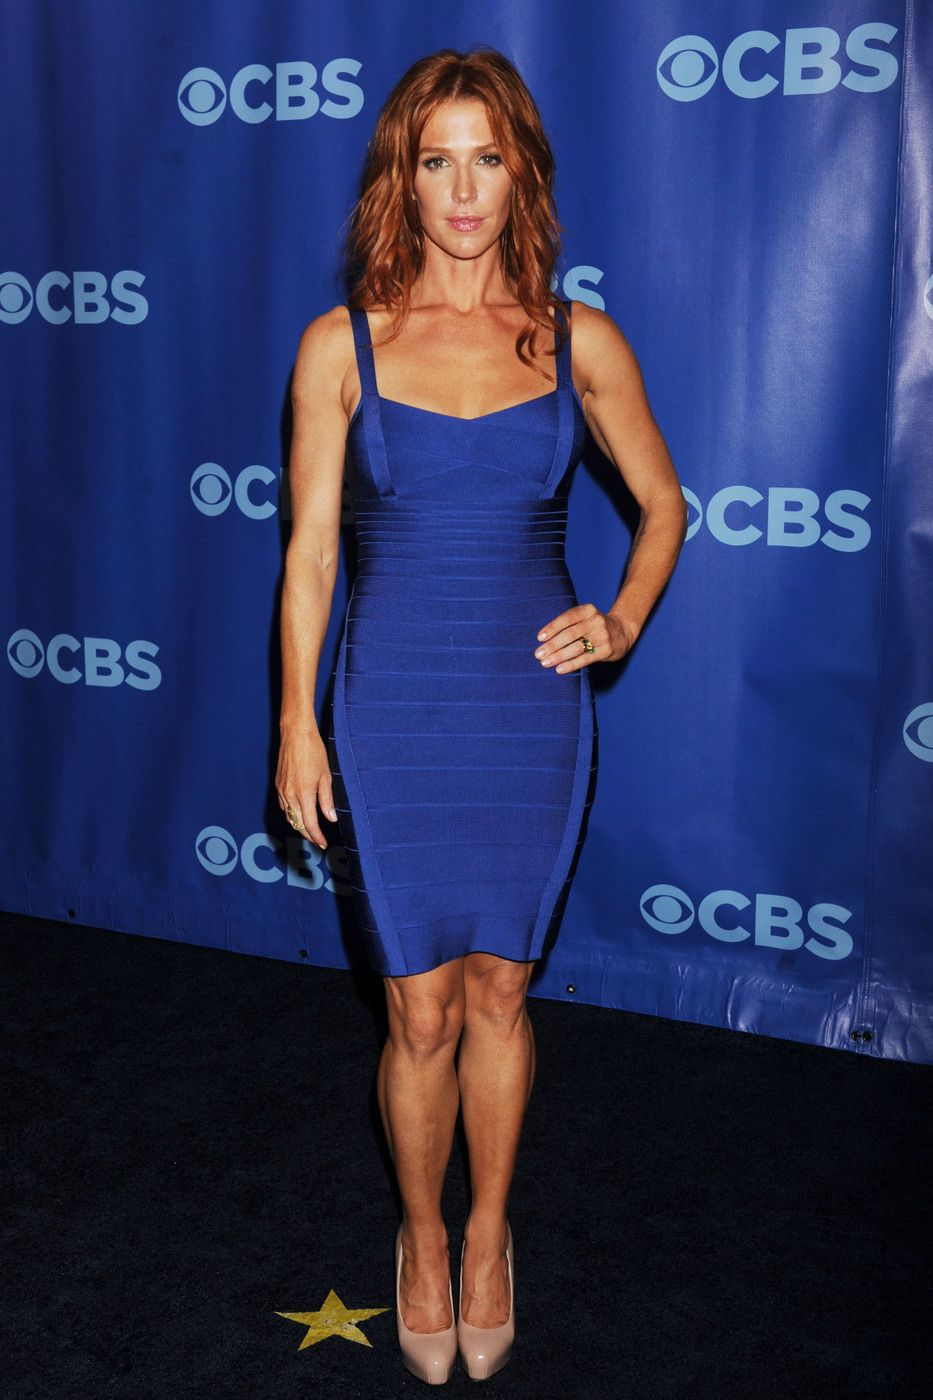 70+ Hot Pictures Of Poppy Montgomery Is No Less Than Slice Of Heaven On Earth | Best Of Comic Books